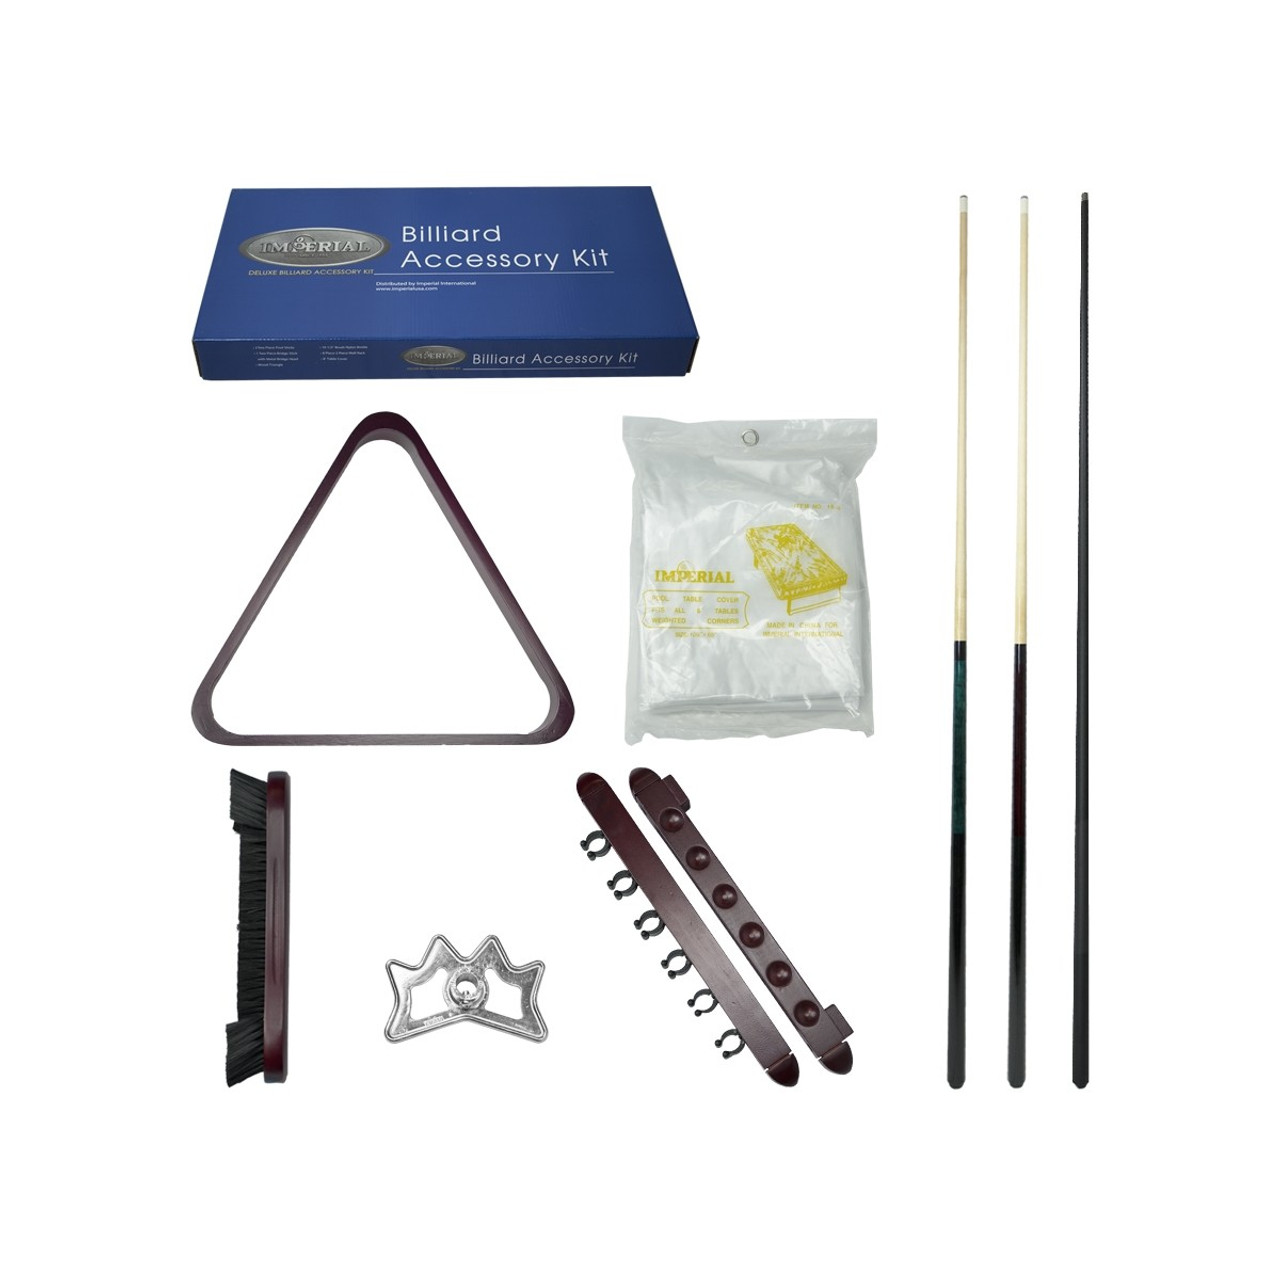 Imperial Silver Accessory KIT